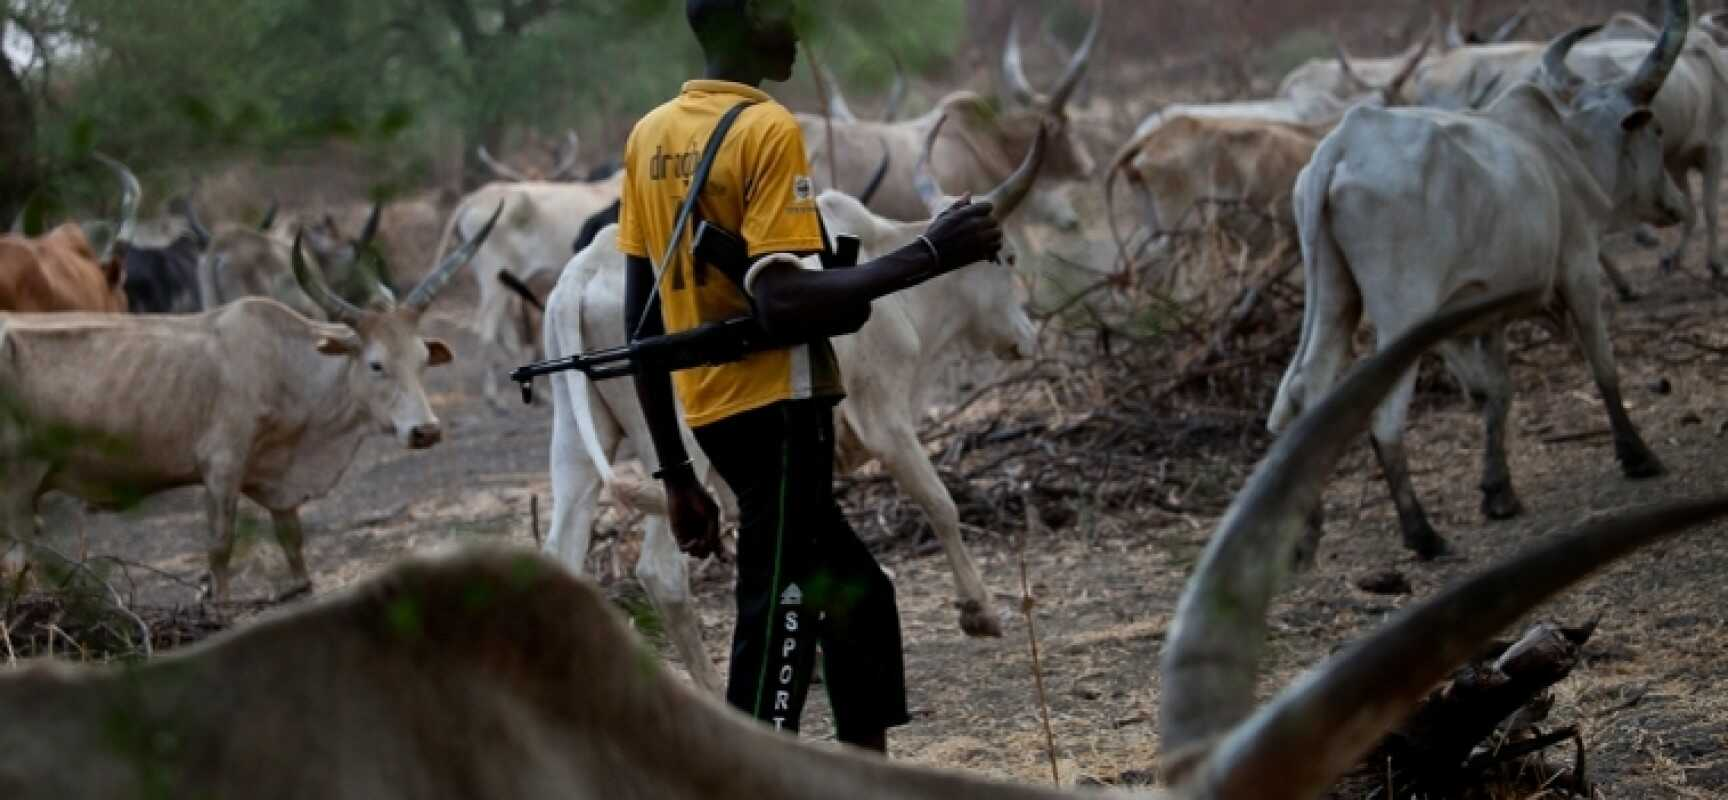 12 killed in an ambush attack by suspected herdsmen in Adamawa.